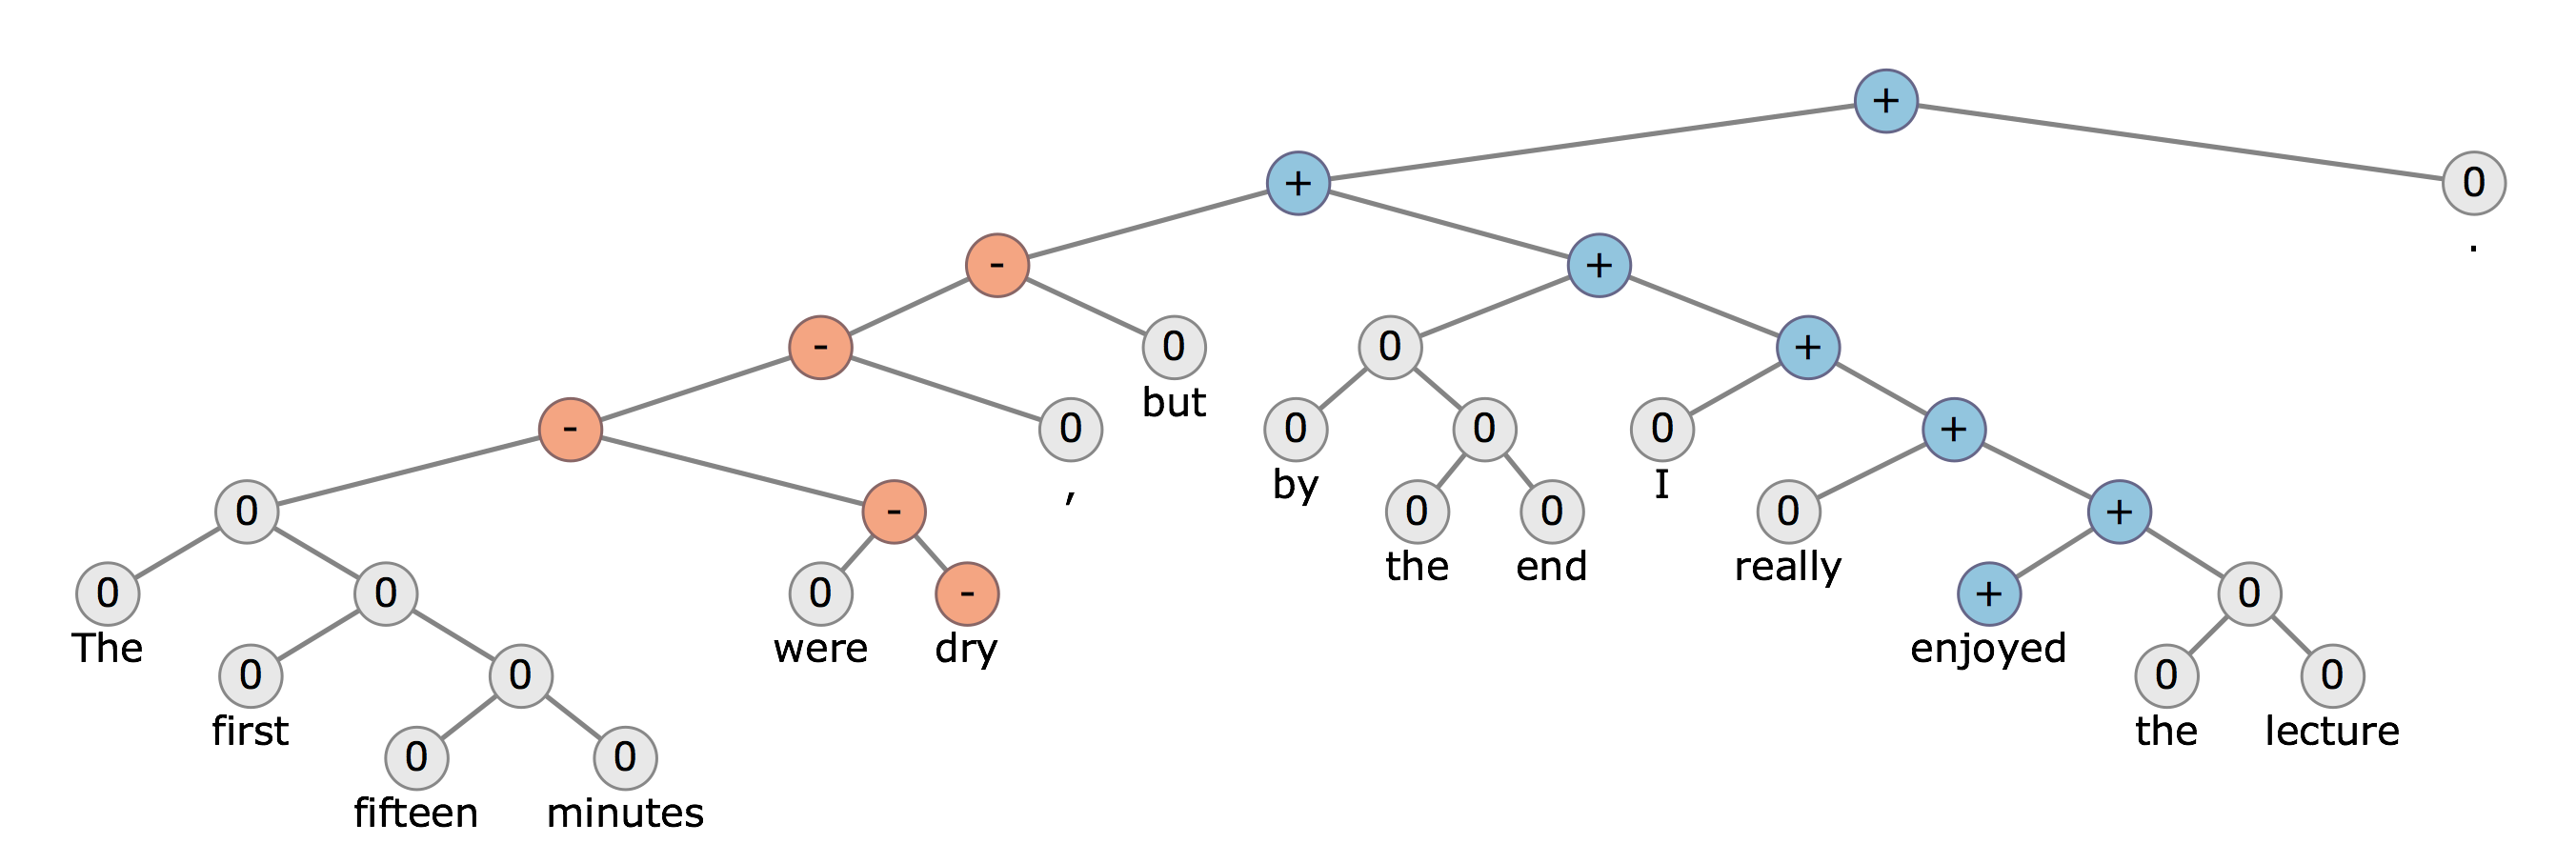 From Stanford's CS224n: Natural Language Processing with Deep Learning